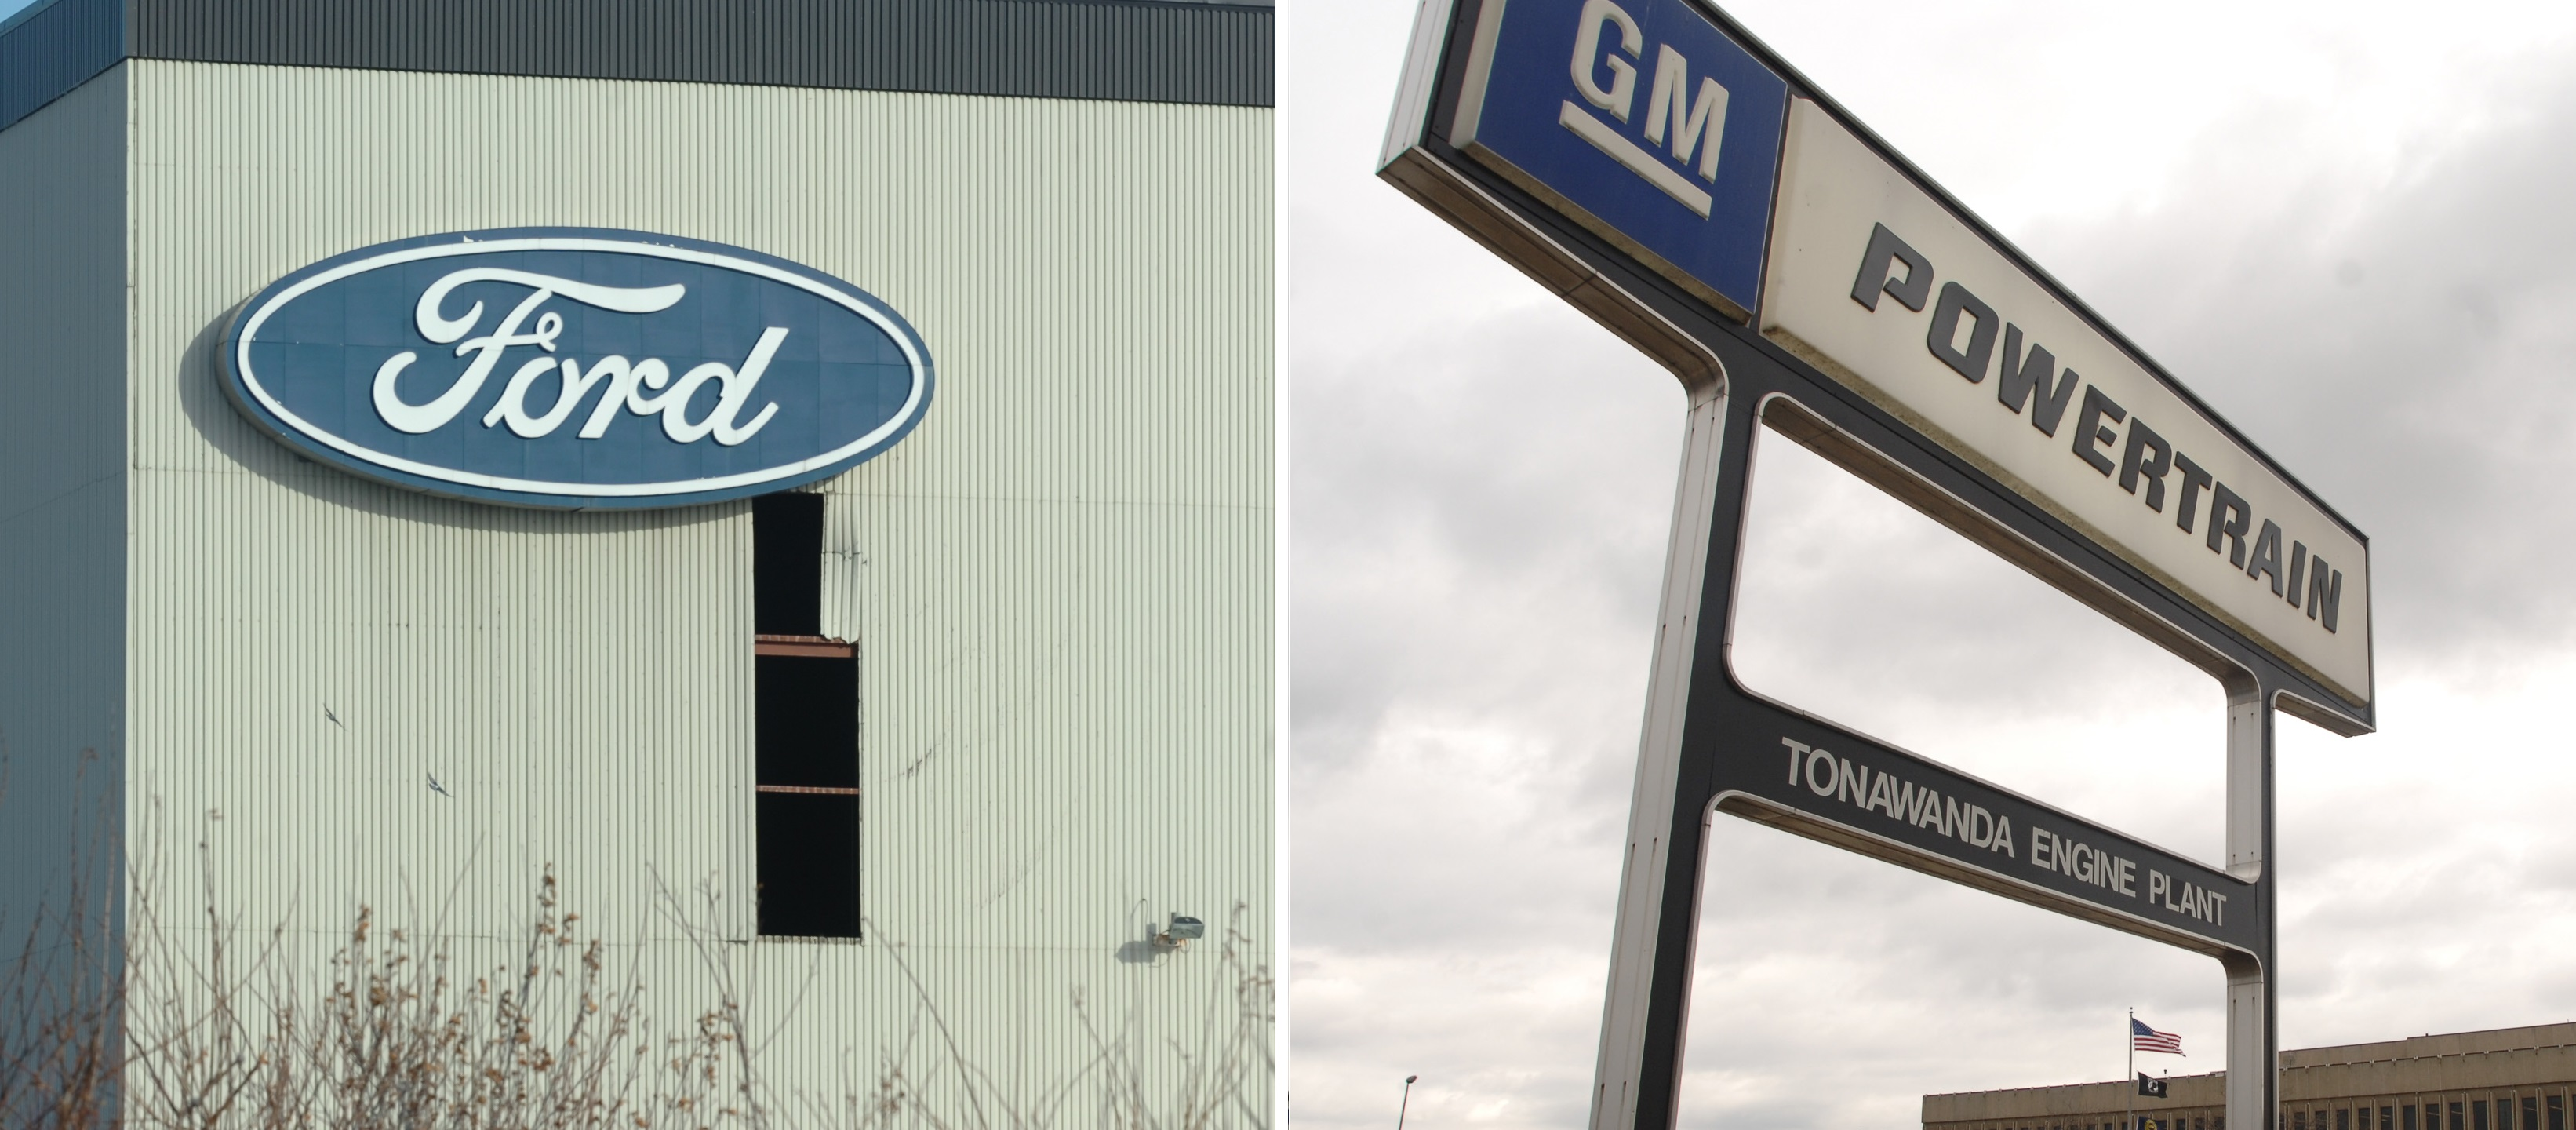 The Ford plant in Hamburg and the GM Powertrain Engine plant in Tonawanda. (News file photos)